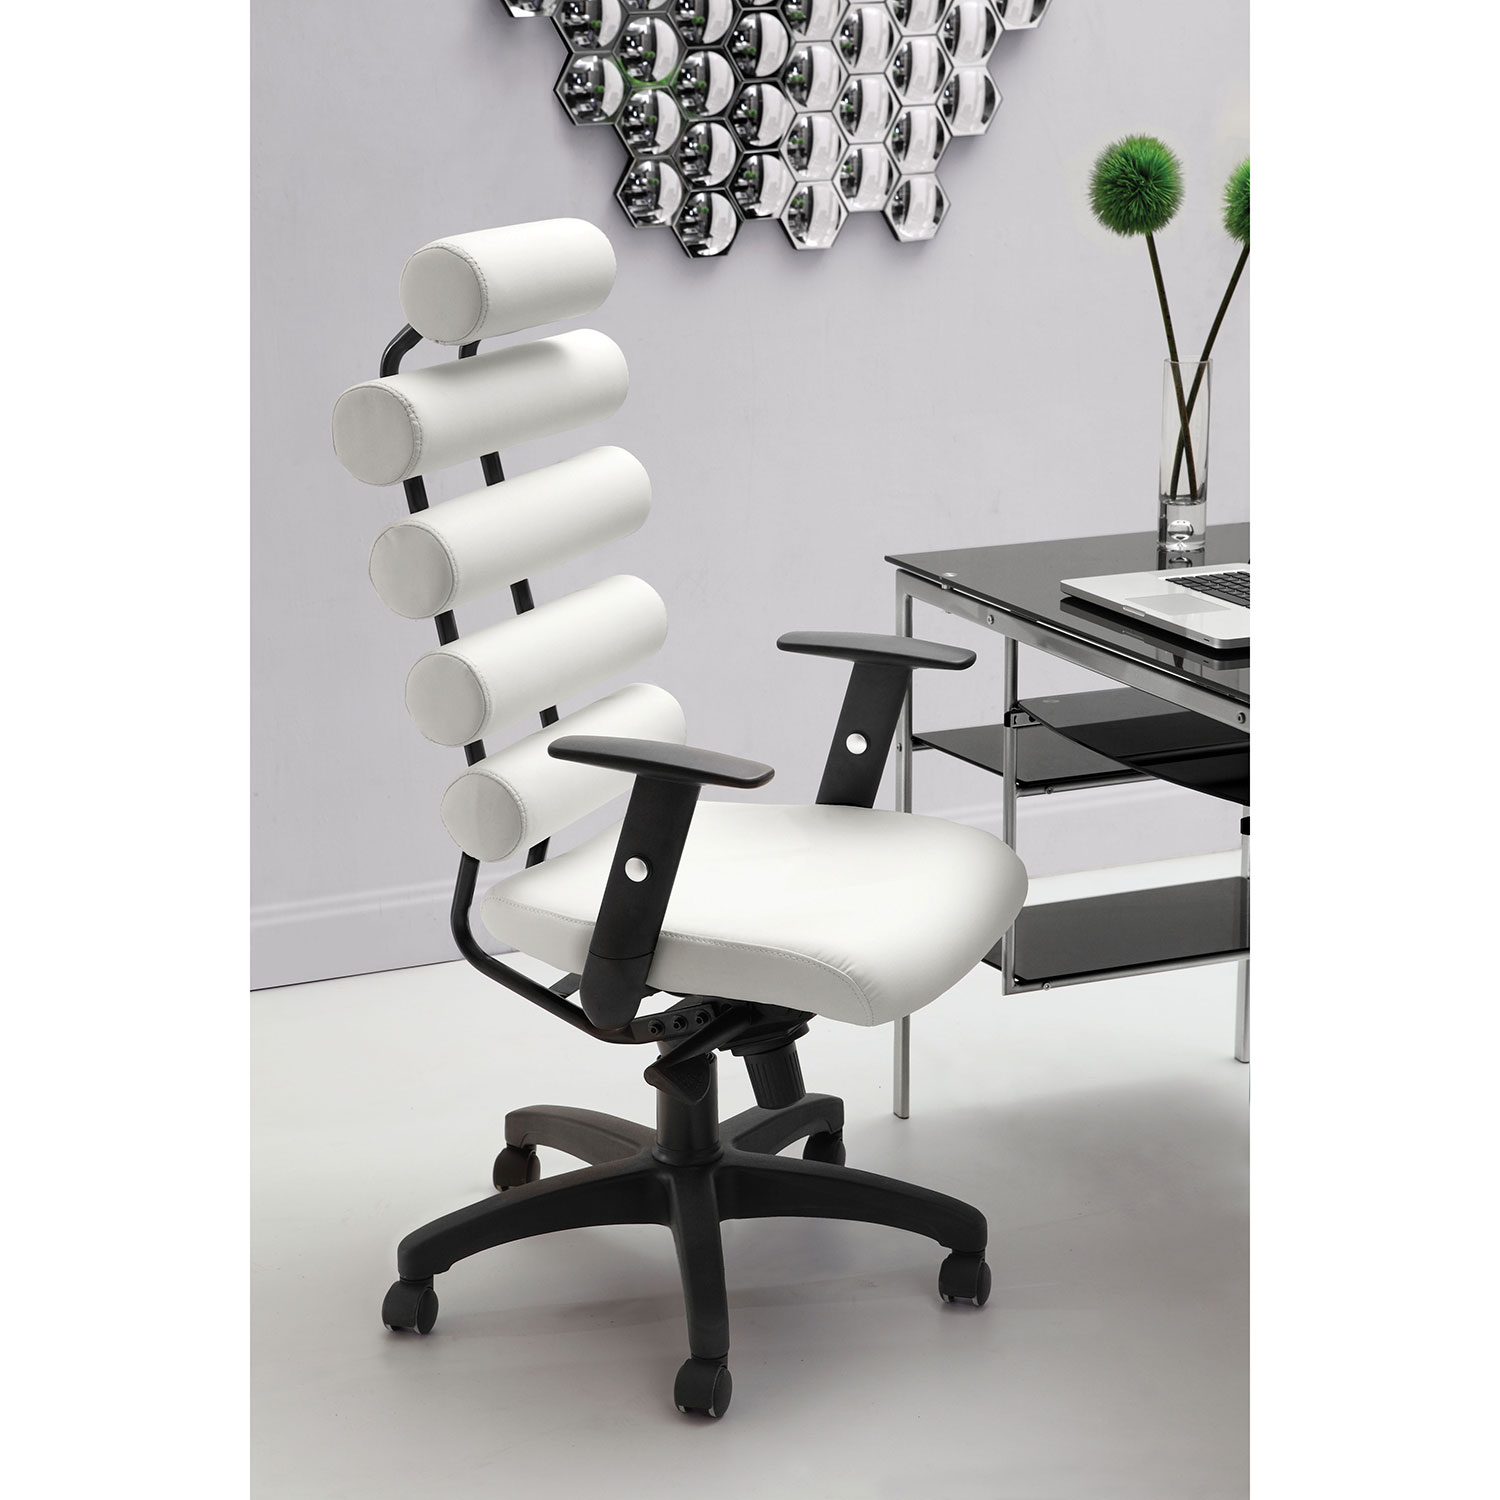 zuo unico leatherette office chair  white  office chairs  best  - zuo unico leatherette office chair  white  office chairs  best buy canada